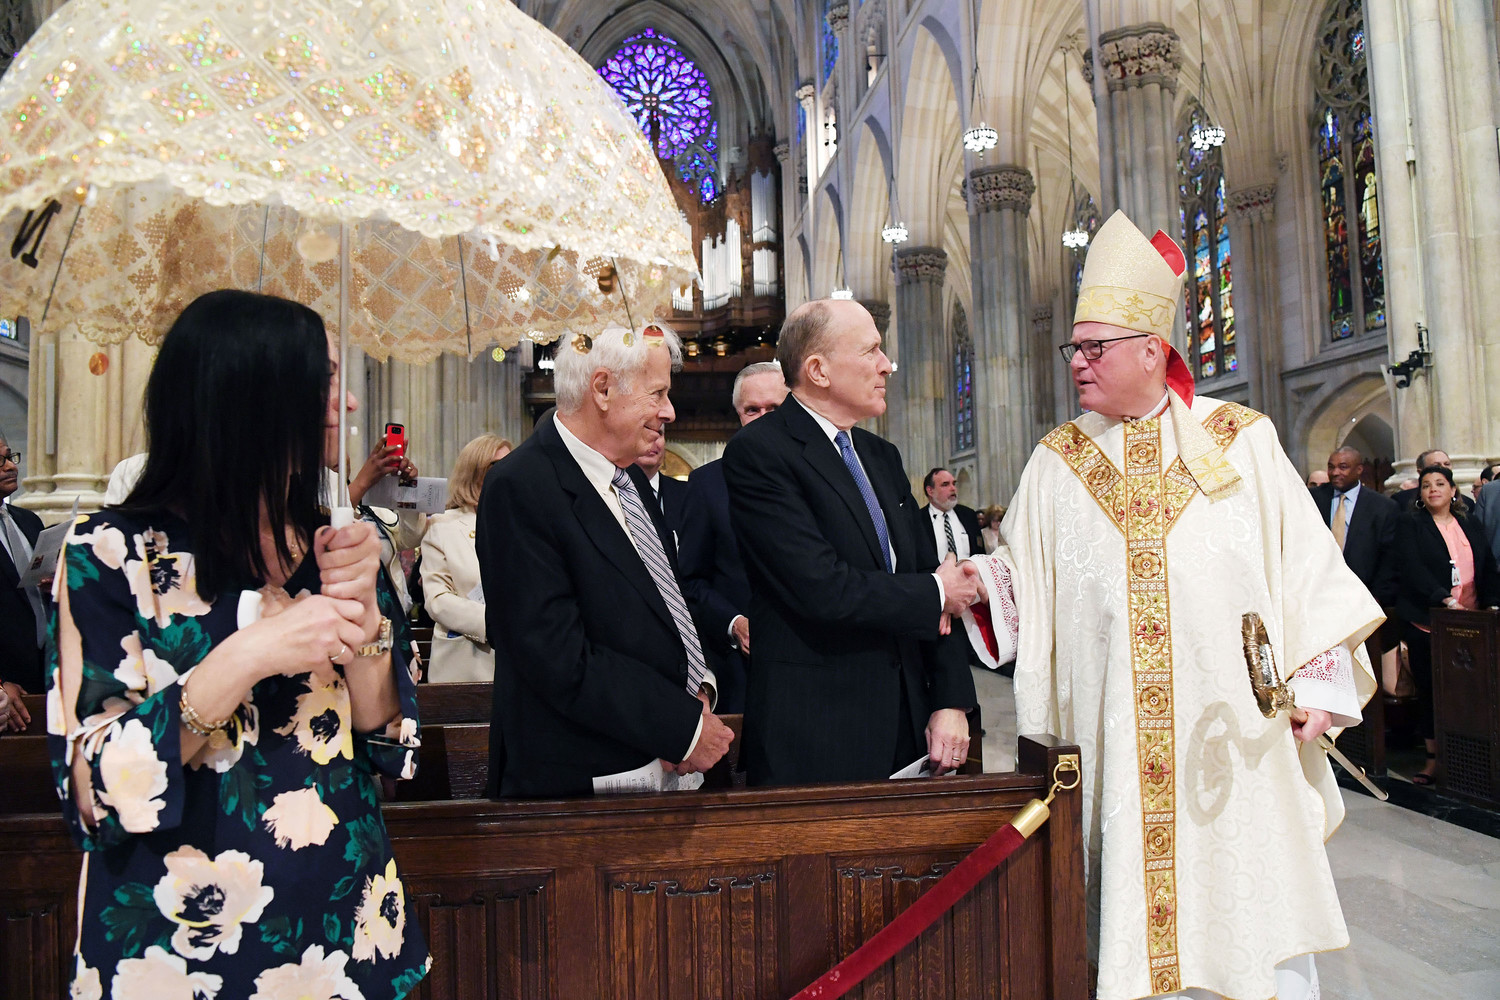 Cardinal Dolan greets Frank Serbaroli, chairman of ArchCare's board of trustees, and Dr. Karl Adler, M.D., vice chairman. At left, one of many decorative umbrellas, symbols of regality and respect for God and the Blessed Mother, is held aloft.